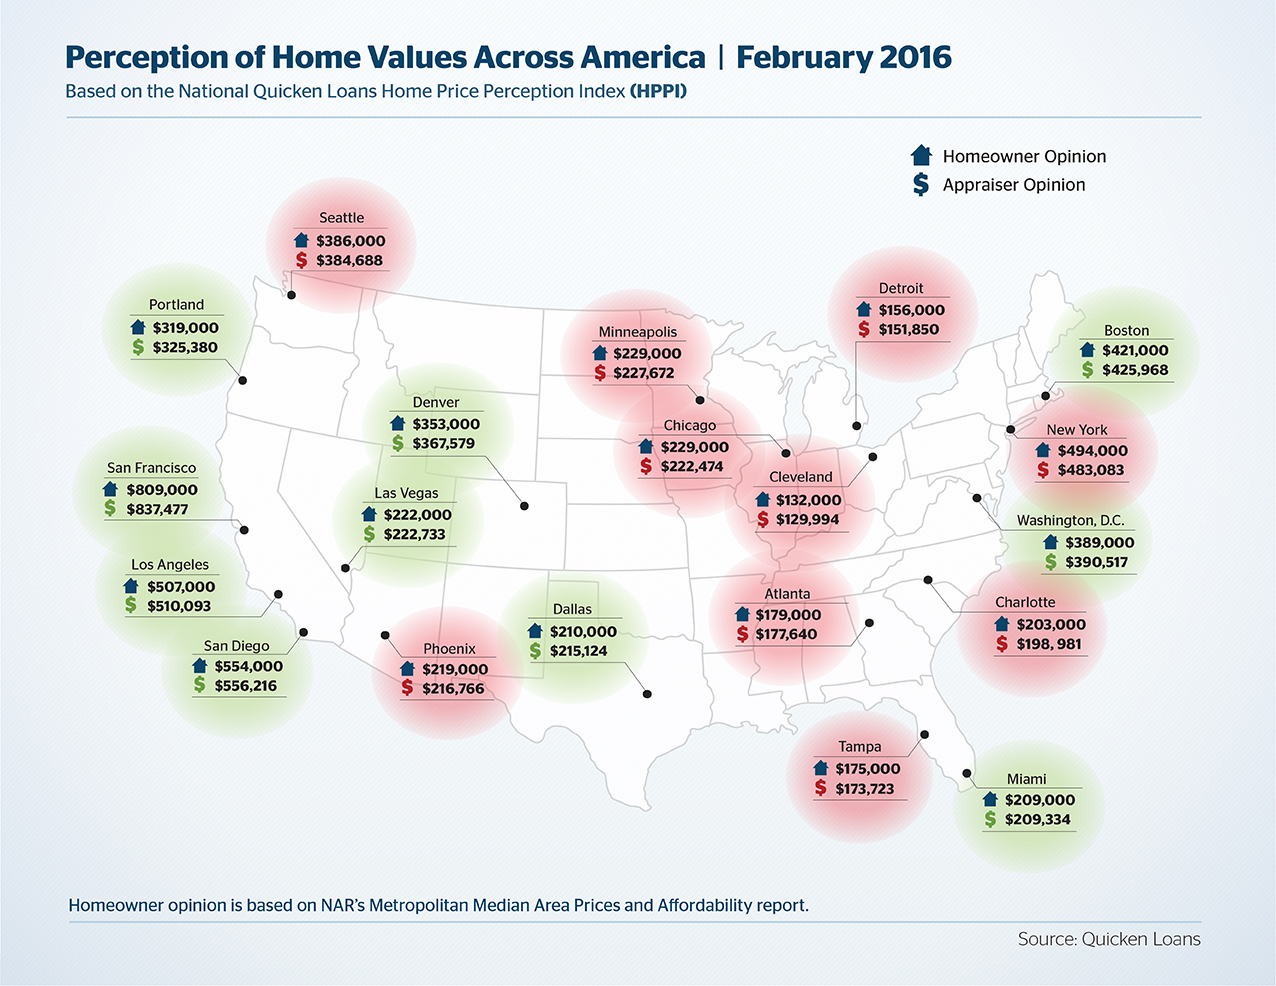 Hppi Chicago Home Values Lower Than Perceptions